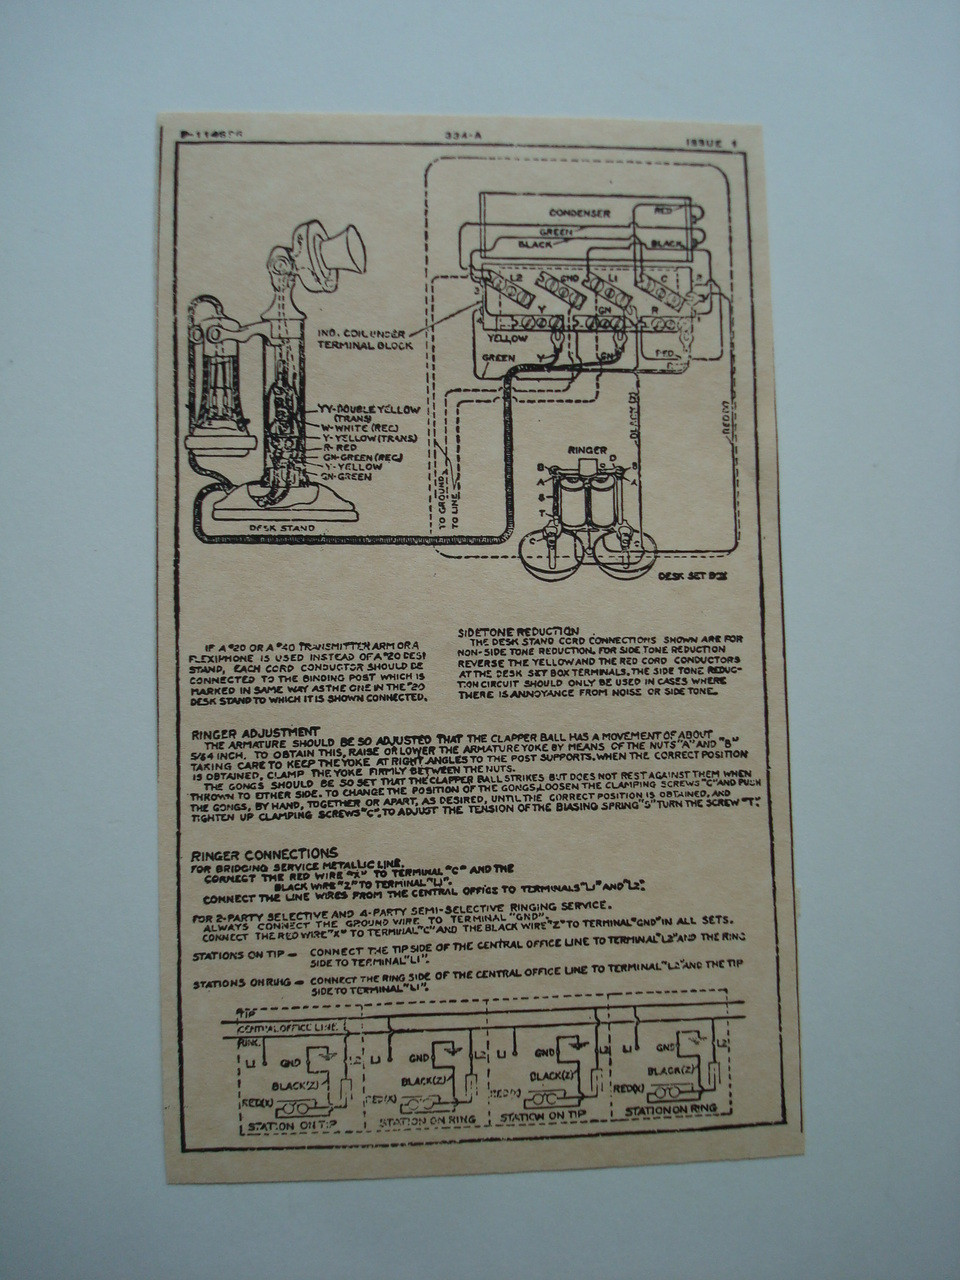 Western Electric 334A ringer subset box wiring diagram glue on | Old Phone Shop